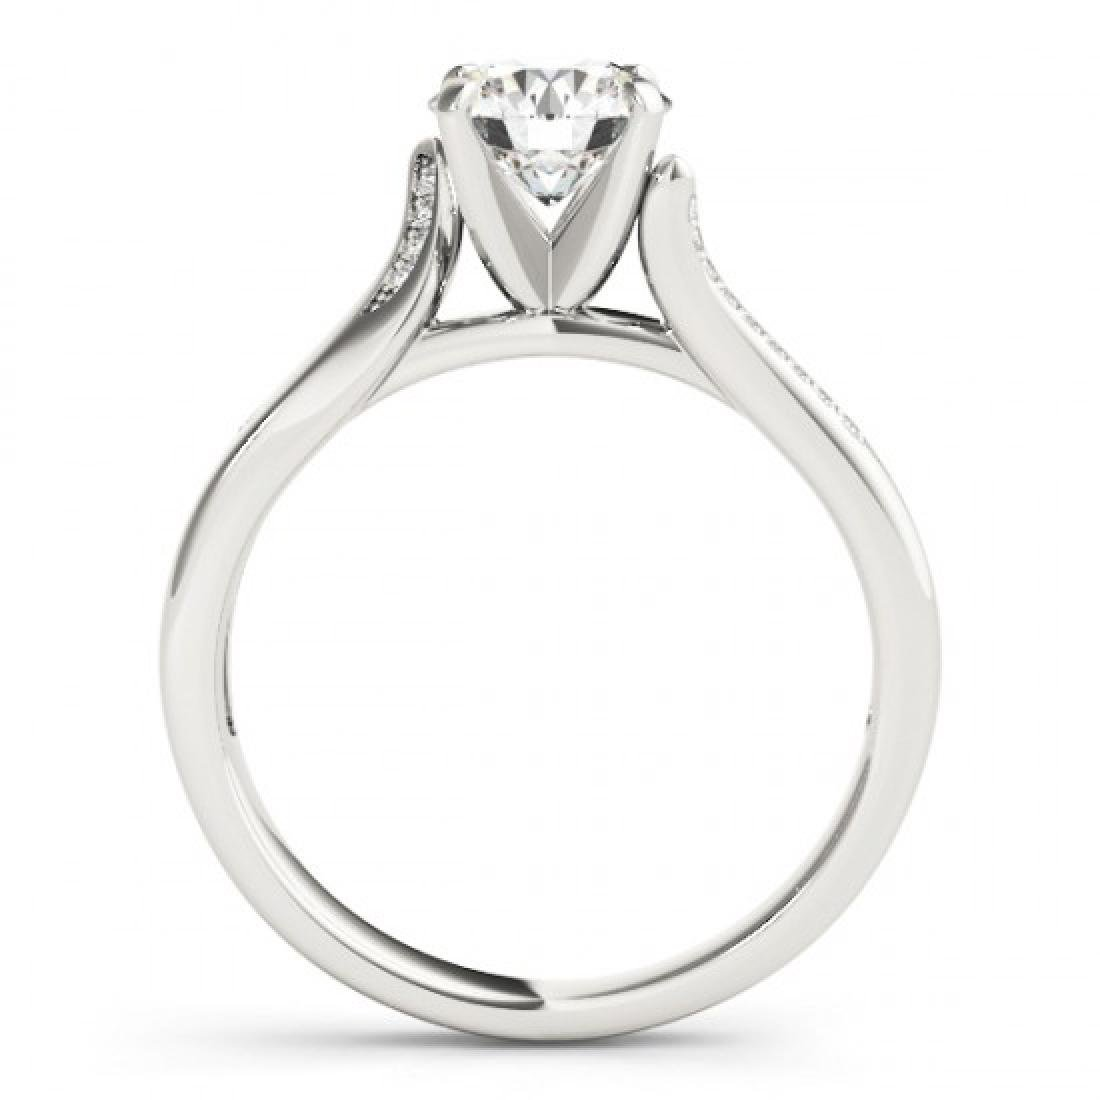 1.18 CTW Certified VS/SI Diamond Solitaire Ring 14K - 2